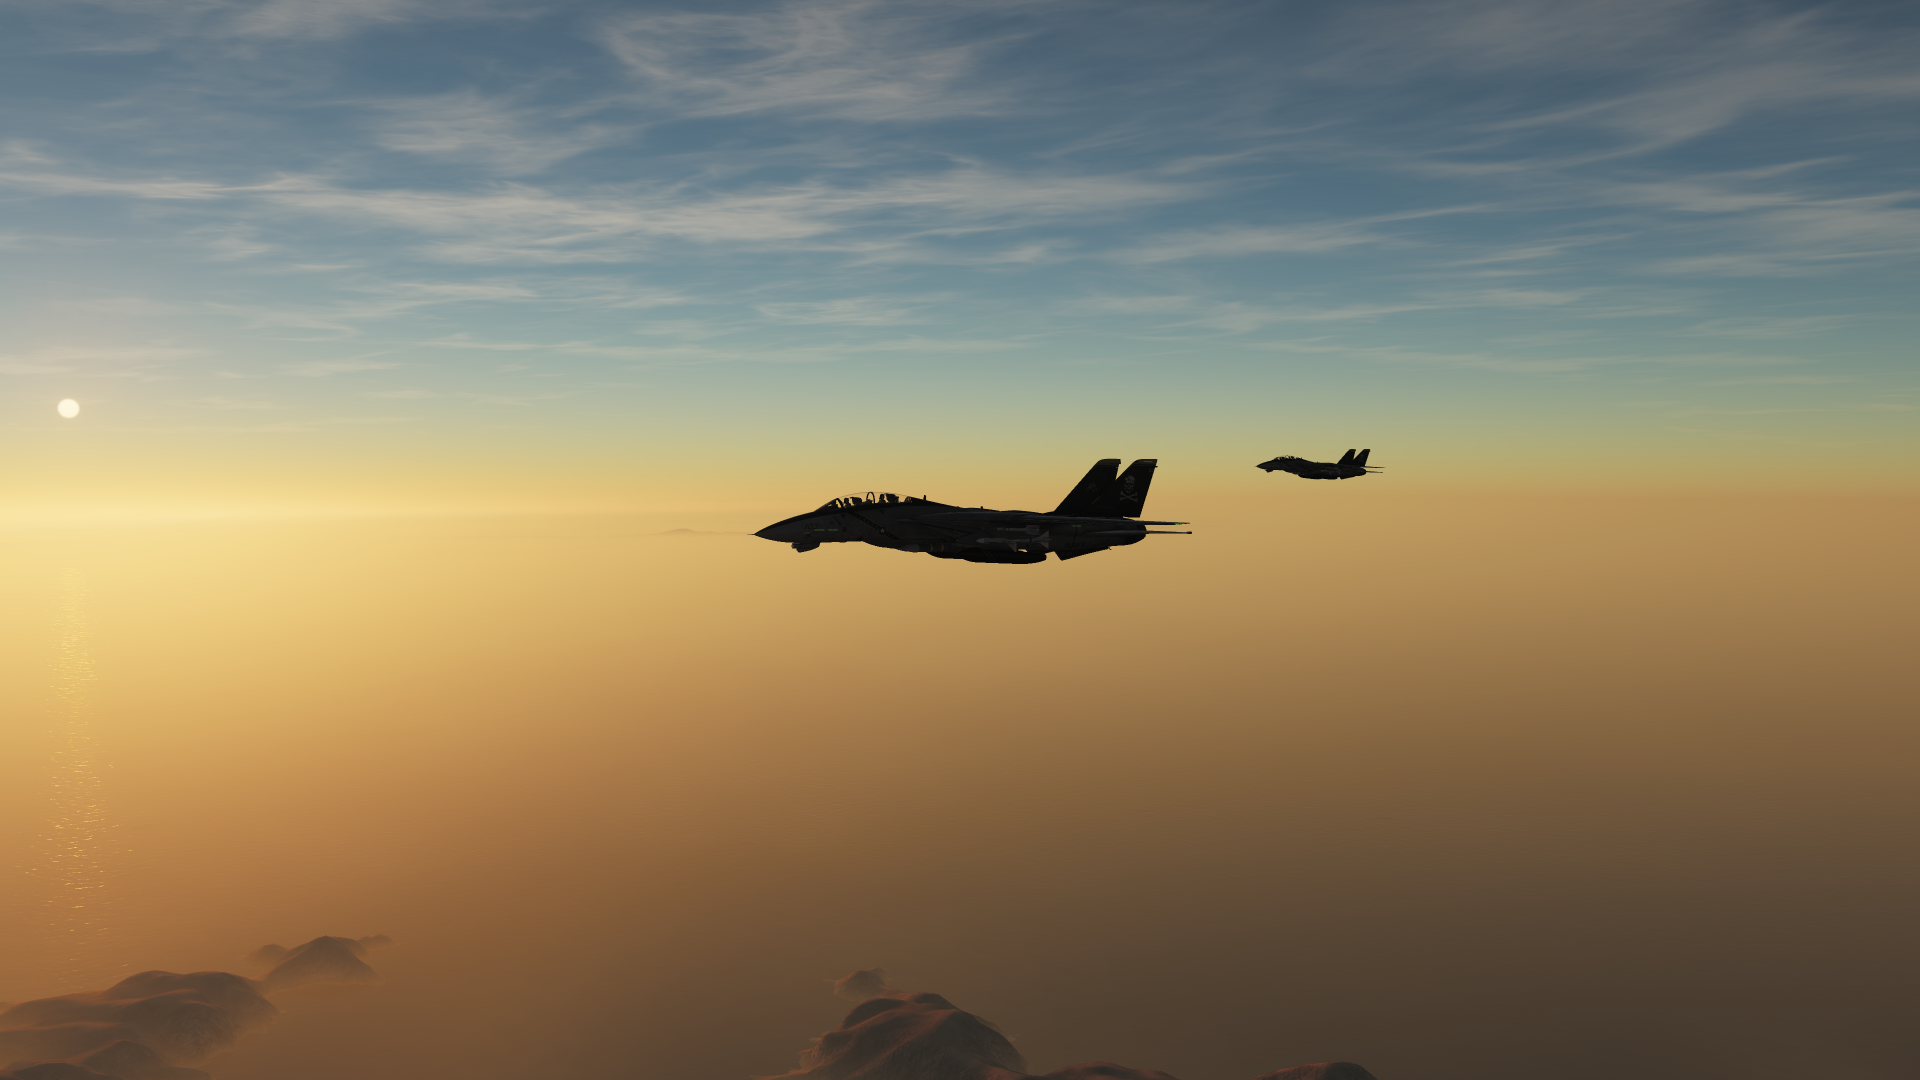 Early Morning Patrol - F-14B Tomcat (beginner, no mods)